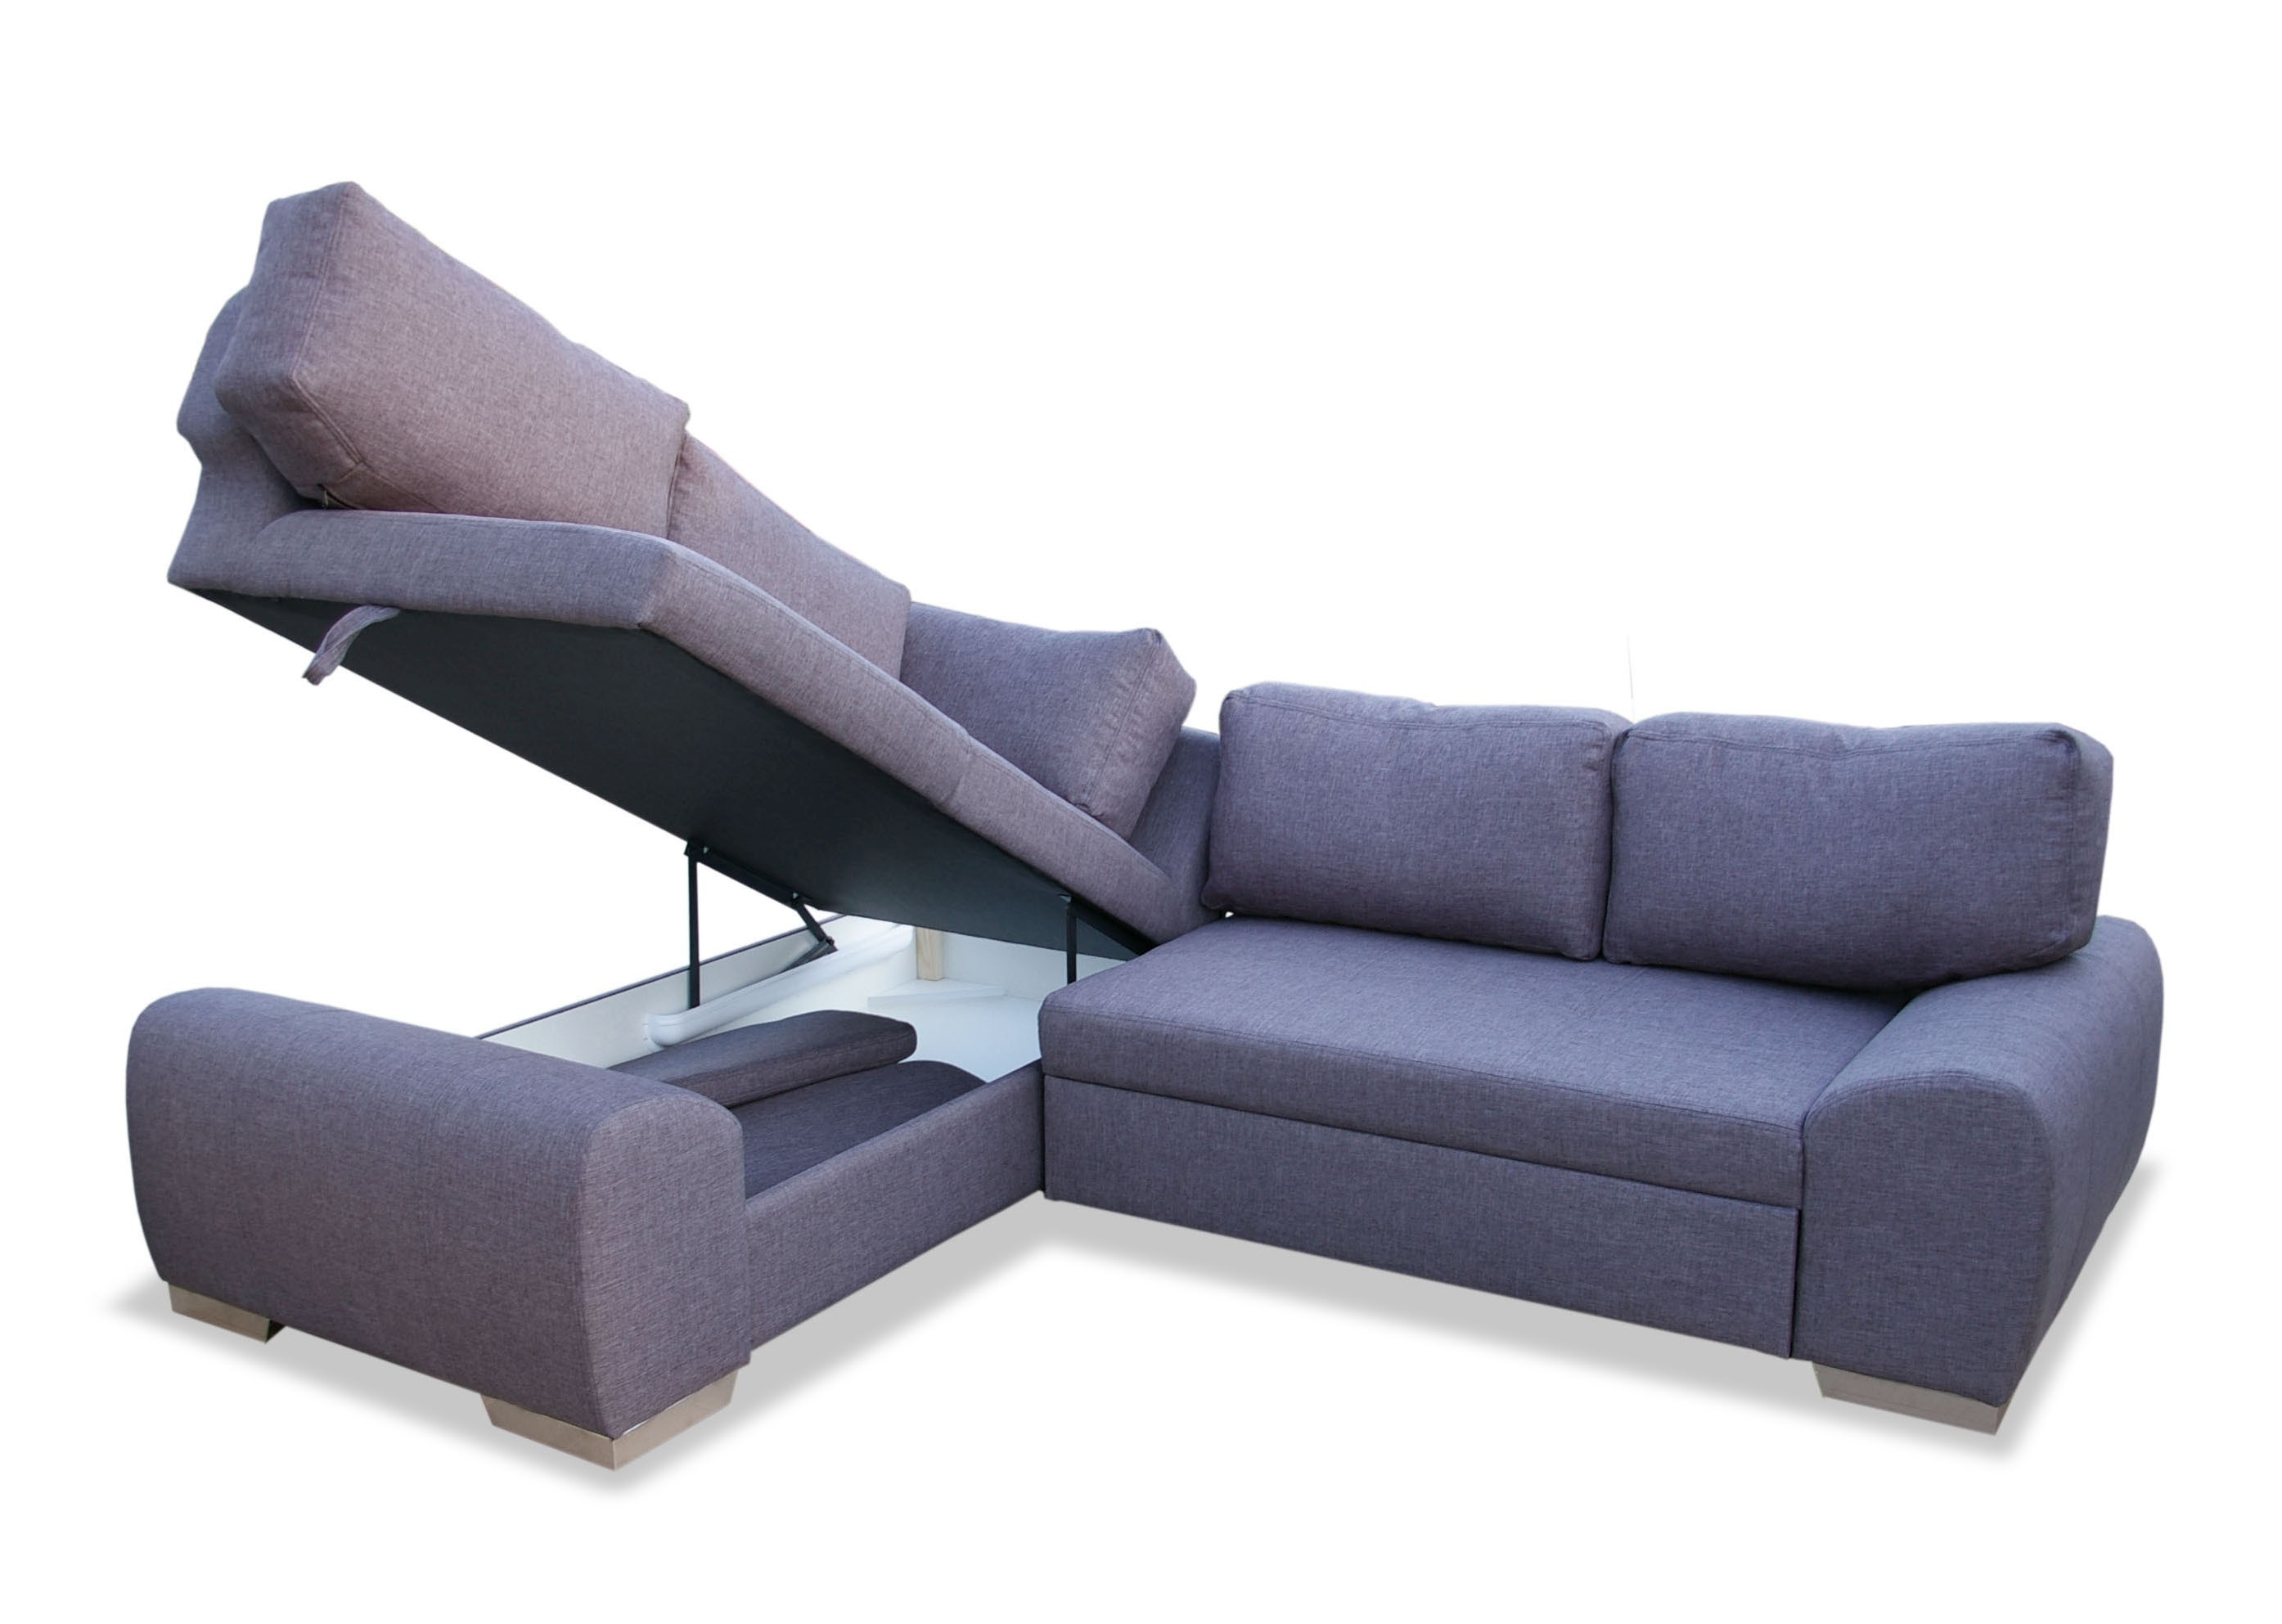 Nice sofa Beds Fresh Best Nice sofa Beds with Additional sofas and Couches Ideas Ideas